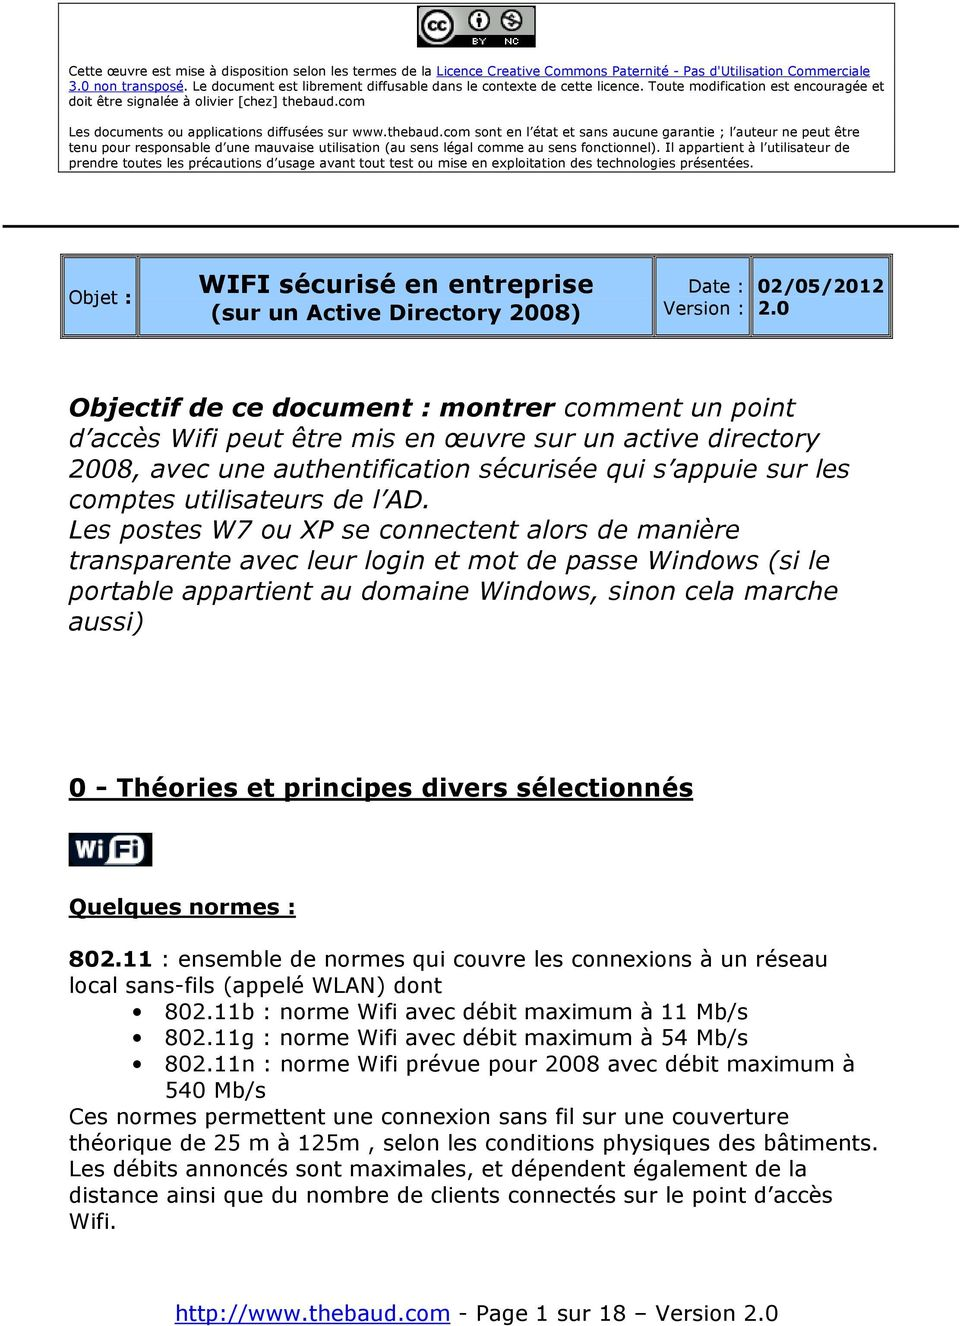 com Les documents ou applications diffusées sur www.thebaud.